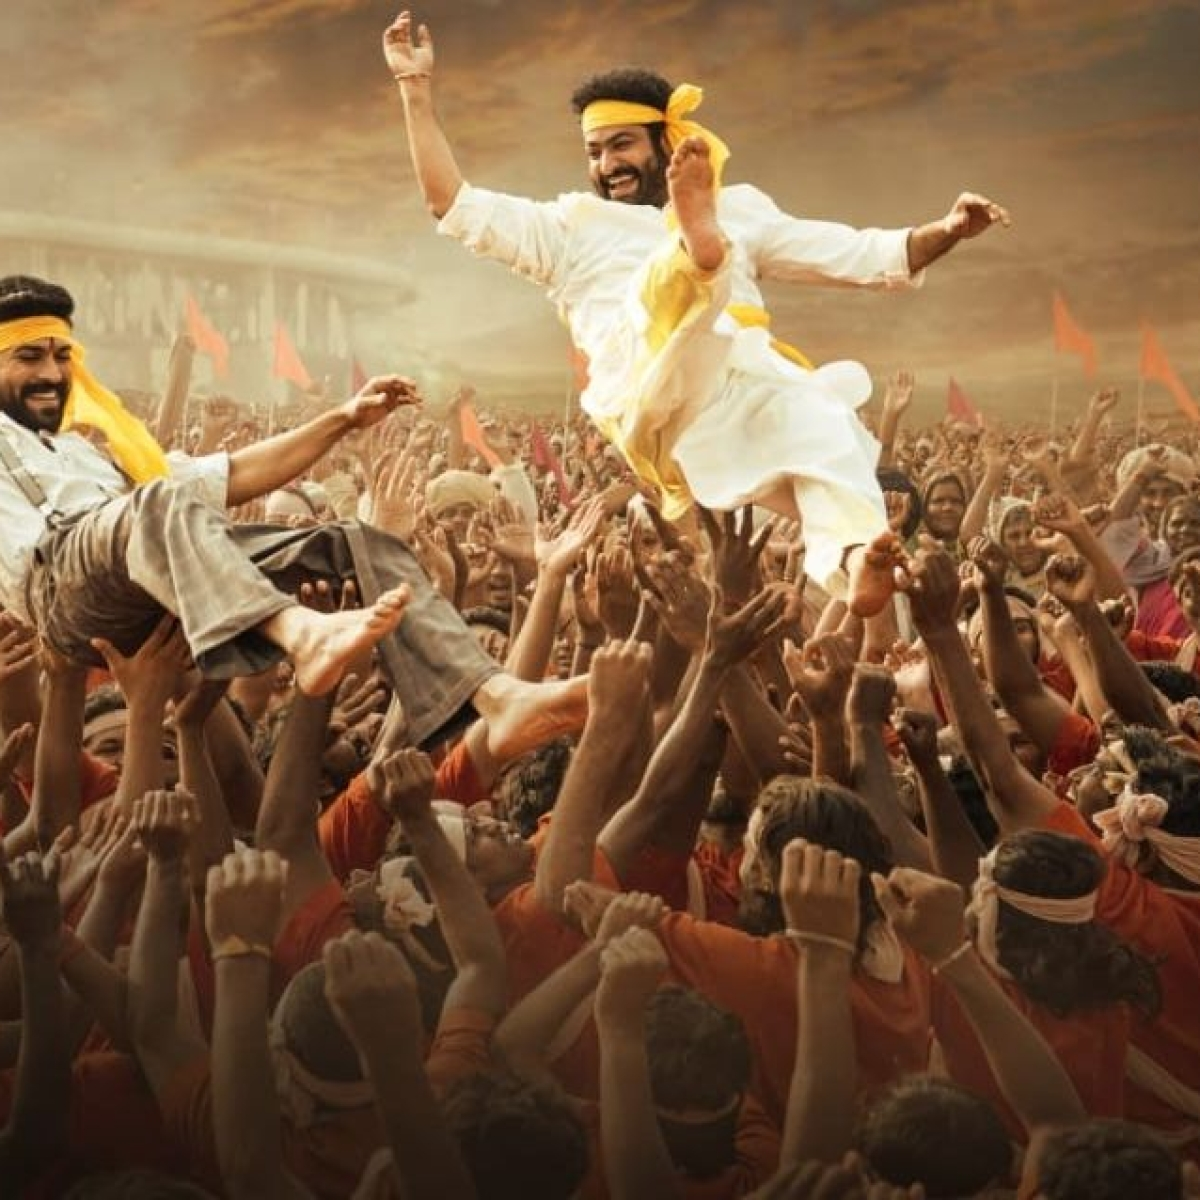 Makers of 'RRR' launch a new poster on the occasion of Gudi Padwa, Baisakhi